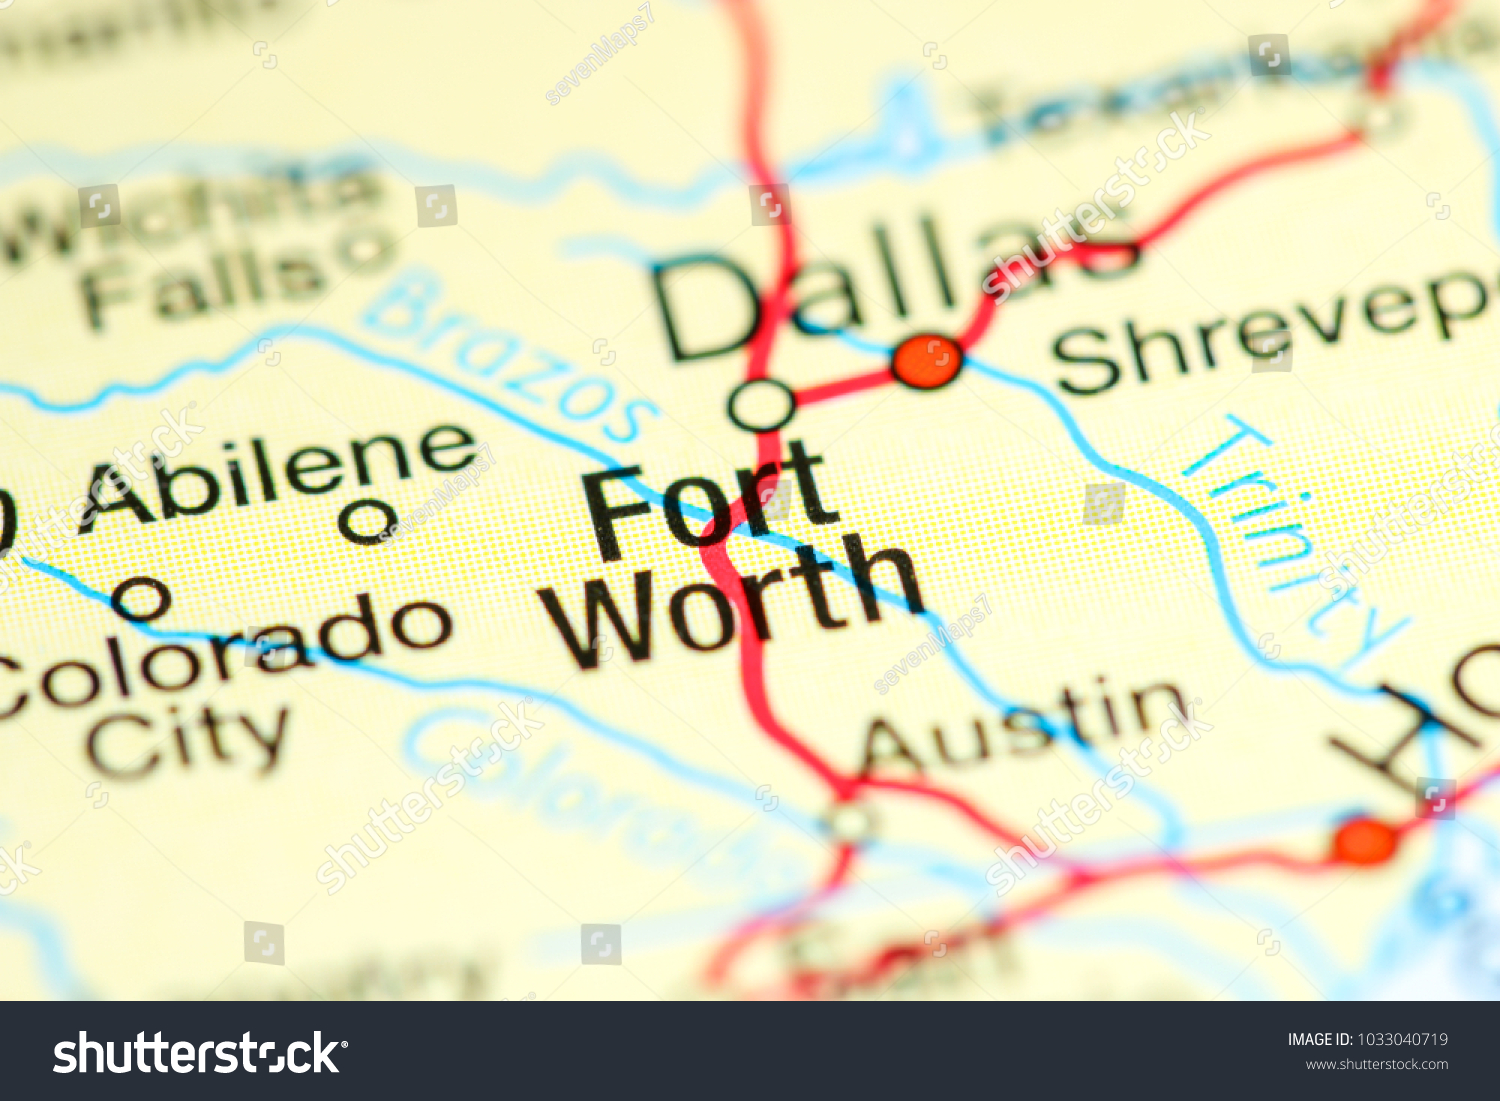 Fort Worth Texas Usa On Map Stock Photo Edit Now 1033040719